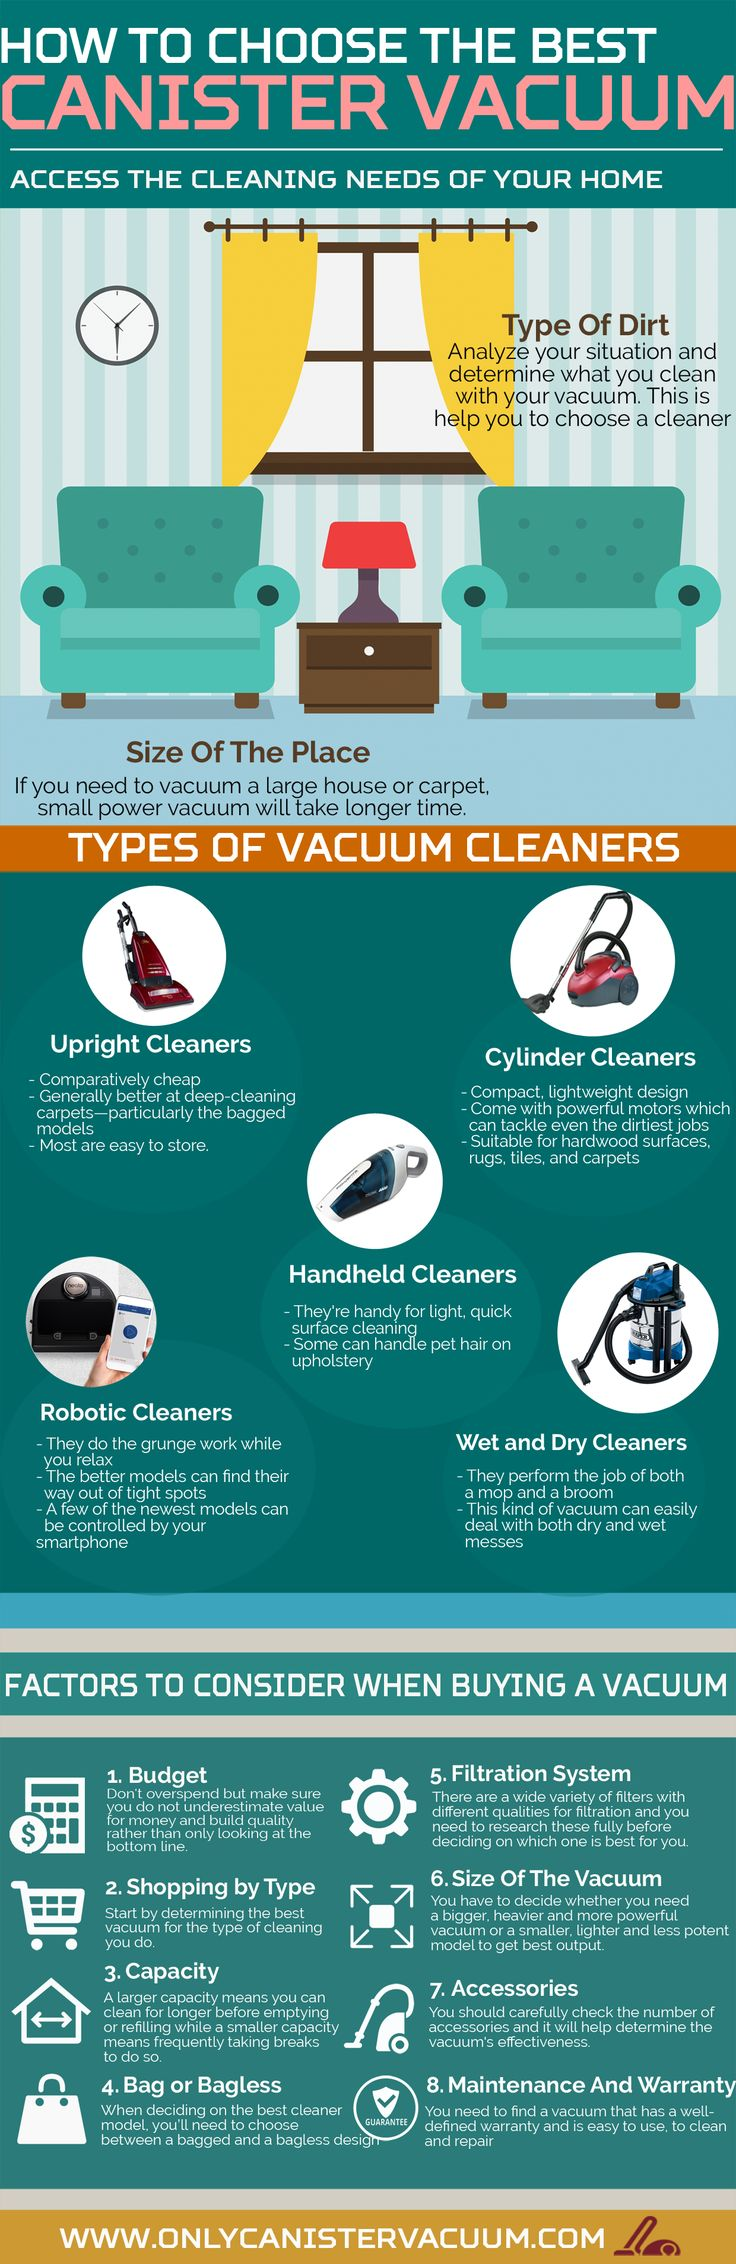 Get 20 best canister vacuum ideas on pinterest without signing up only interested to know what is the best canister vacuum cleaners in the market check baanklon Images